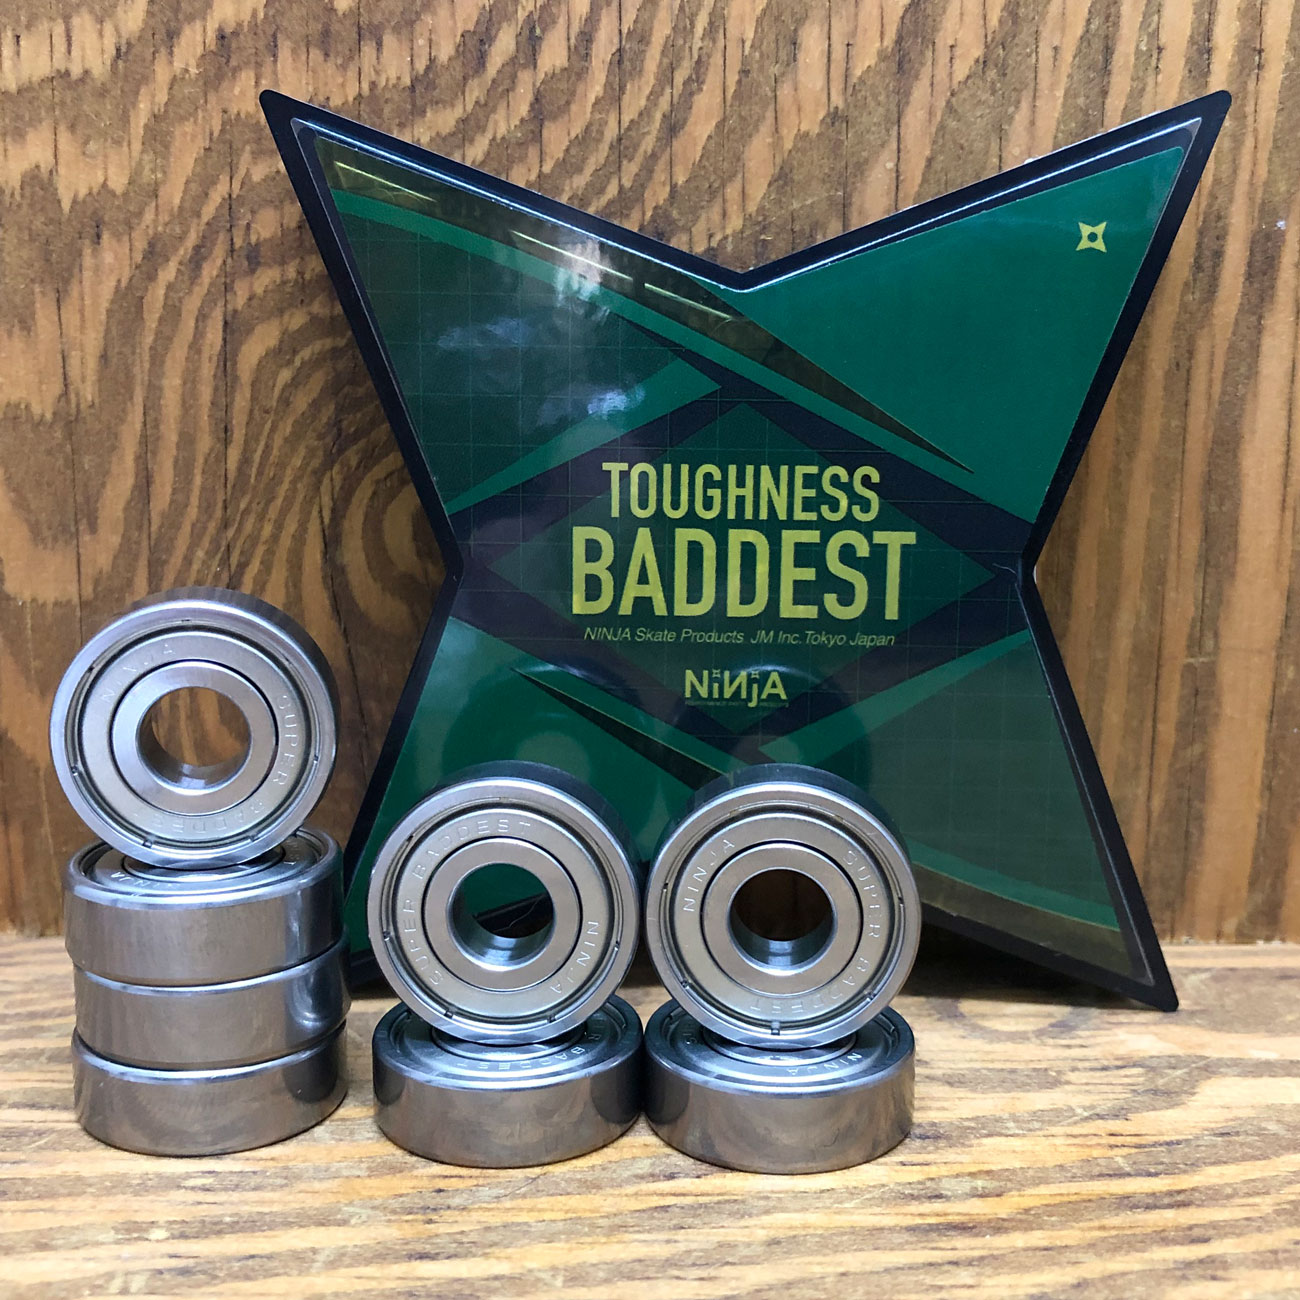 NINJA BEARINGS SUPER BADDEST TOUGHNESS